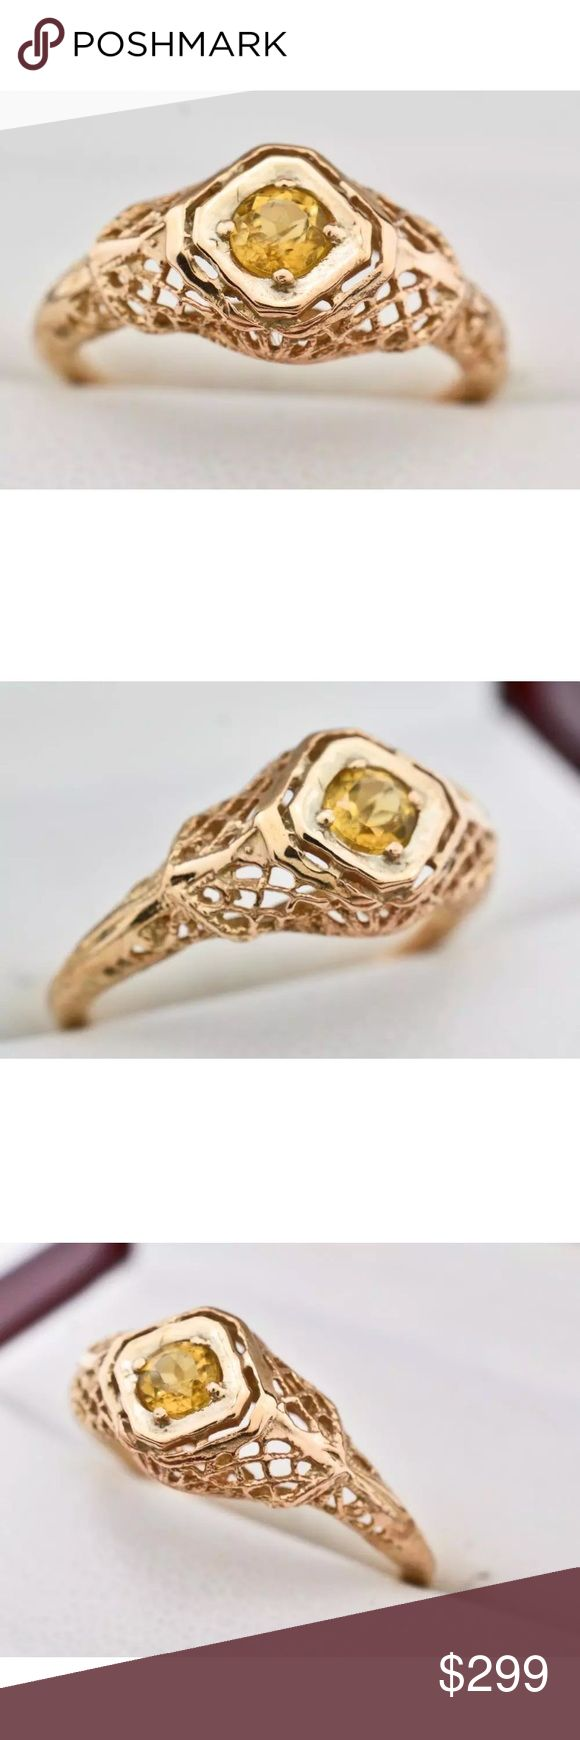 """💛ANTIQUE VINTAGE CITRINE FILIGREE RING💛 🔶 💛ANTIQUE VINTAGE CITRINE FILIGREE RING💛 Carat Weight:.25ctw Type:     Genuine Citrine Shape:     Round Color:     Yellow Clarity:     SI Total Carat Weight:.25ct North to South:          7.8mm Height Above Finger:   .31"""" Shank Width:           1.21mm Finger Size:        5 Gram Weight: 1.4g Material:        14k Rose Gold over 925 Sterling SIlver *Retail Value:$699.00 🔶EUC💛 Jewelry Rings"""